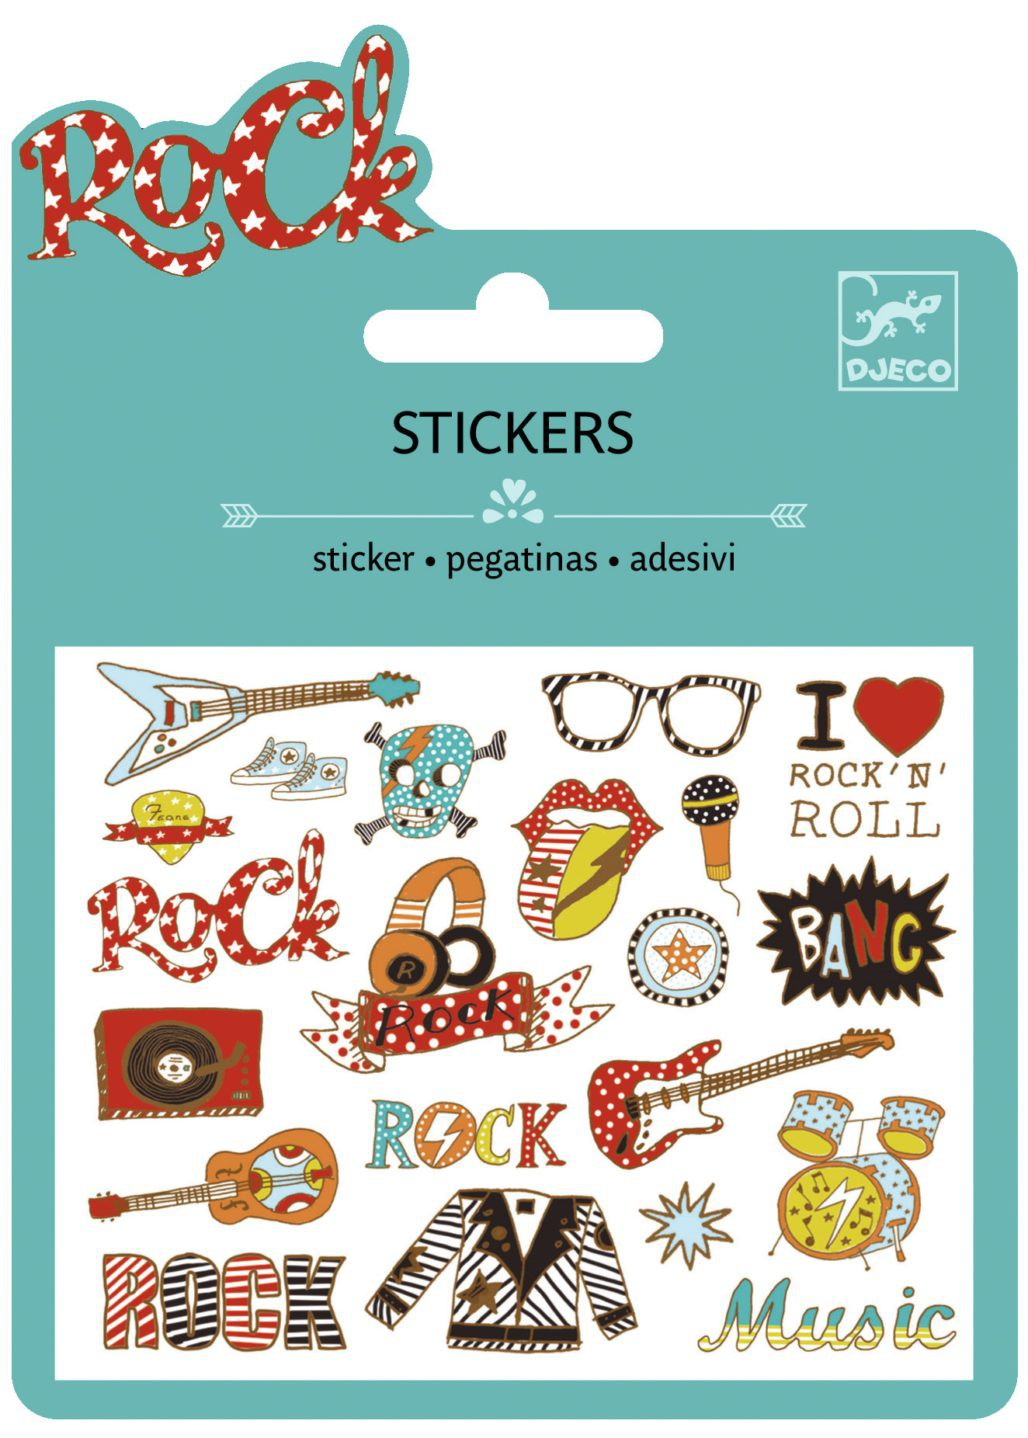 25 Stickers - Pop y Rock